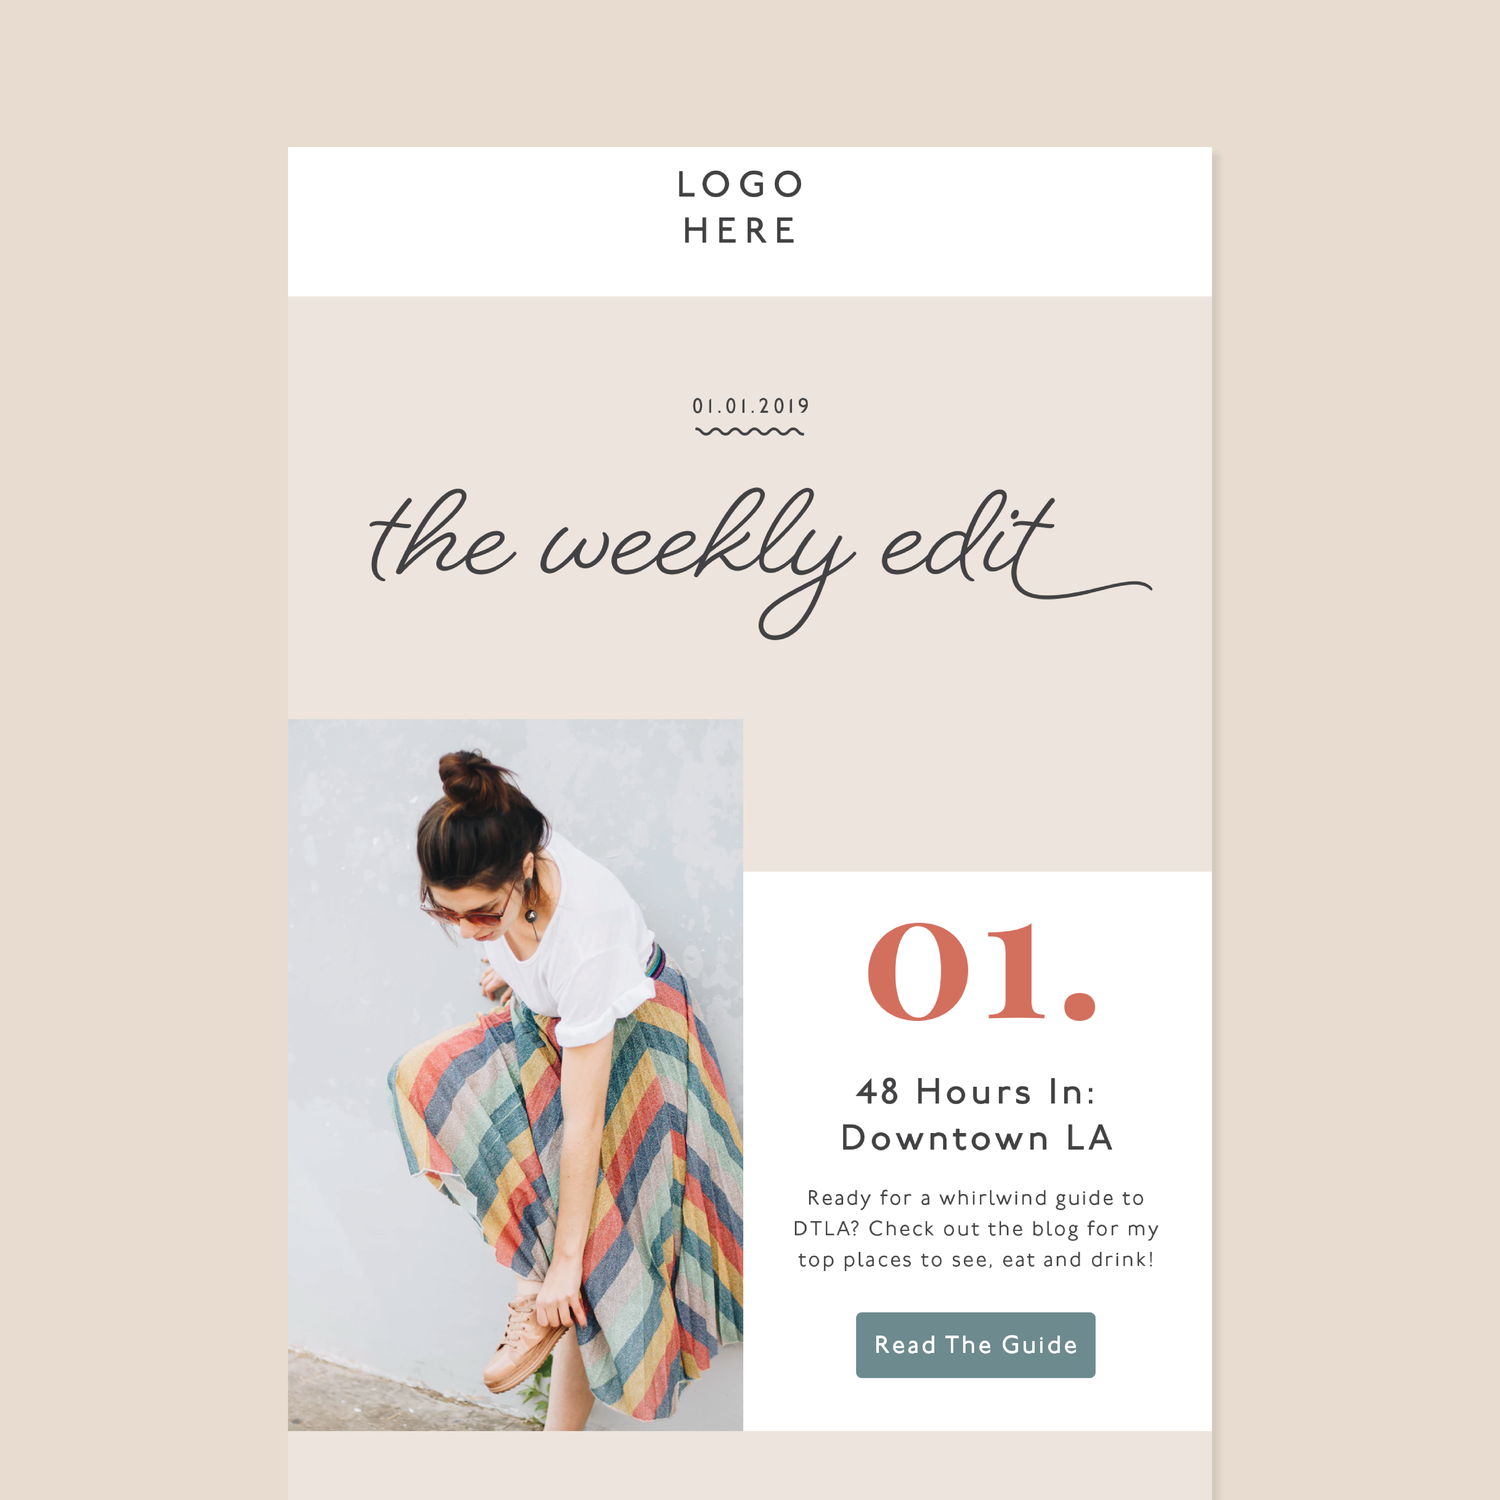 Emily Customizable Email Template Lindsay Scholz Studio Brand Designer Content Strate In 2020 Email Template Design Email Design Inspiration Email Newsletter Design